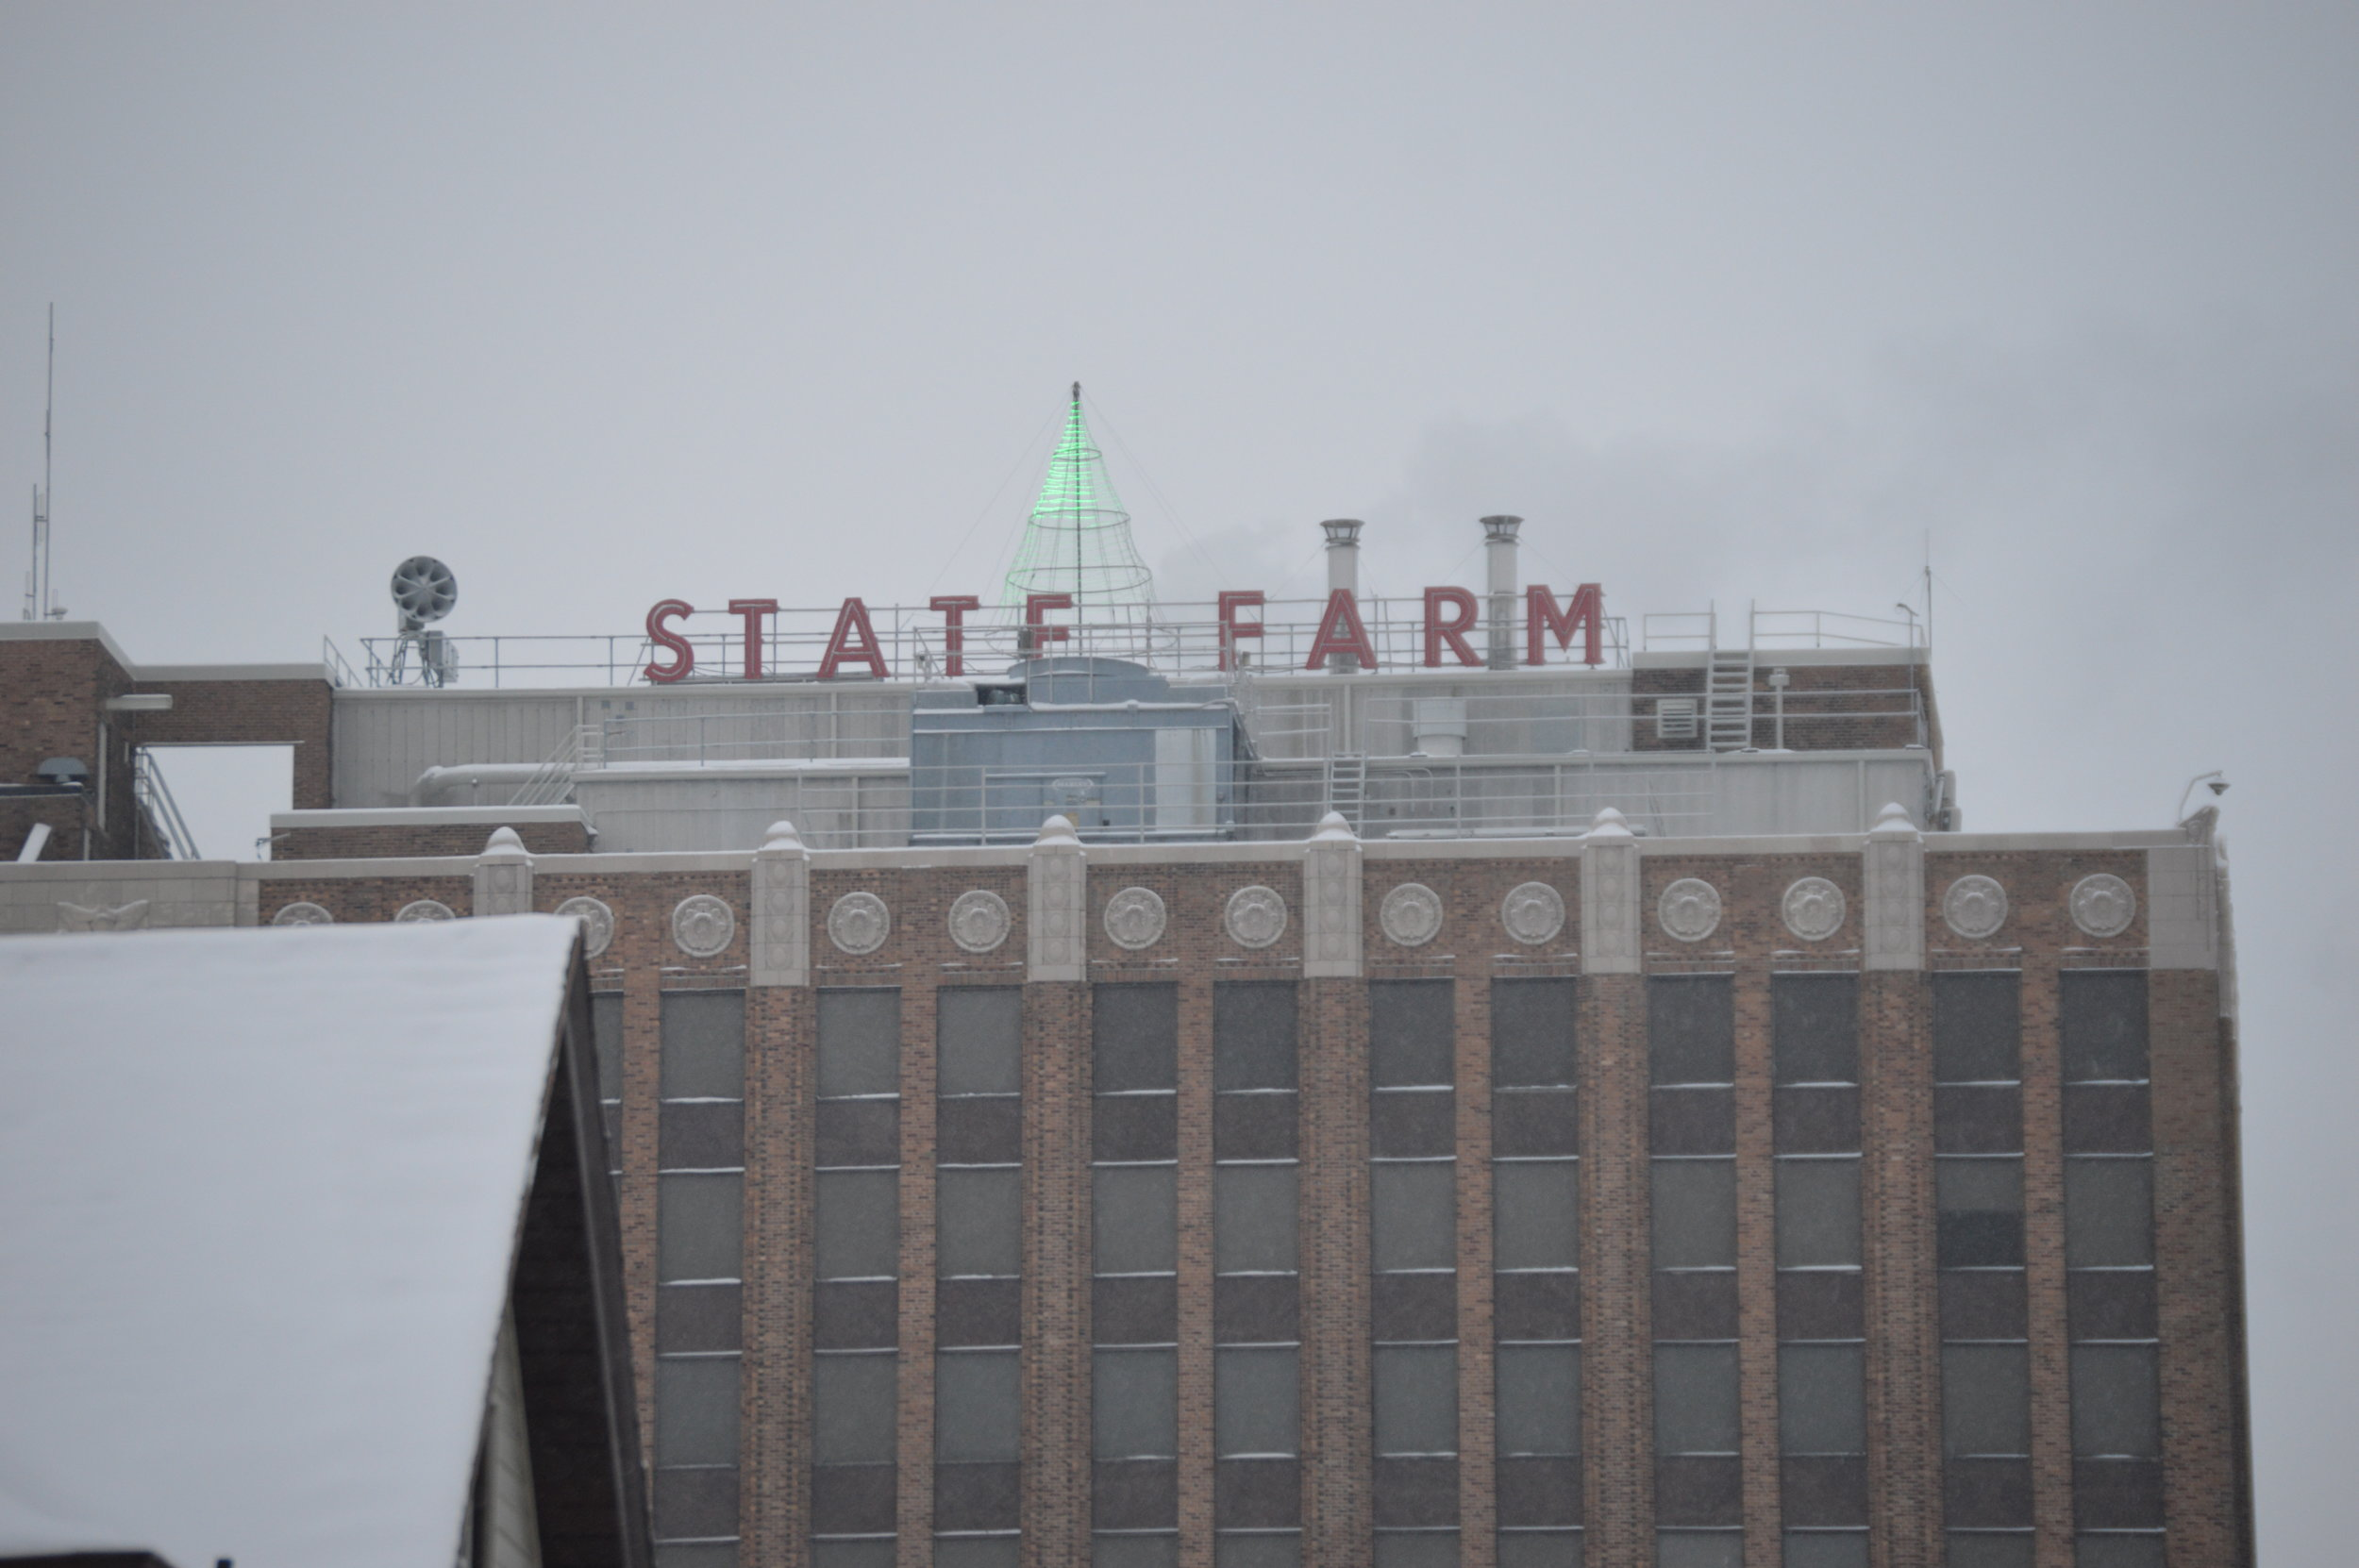 State Farm will close the building at the end of the month. -